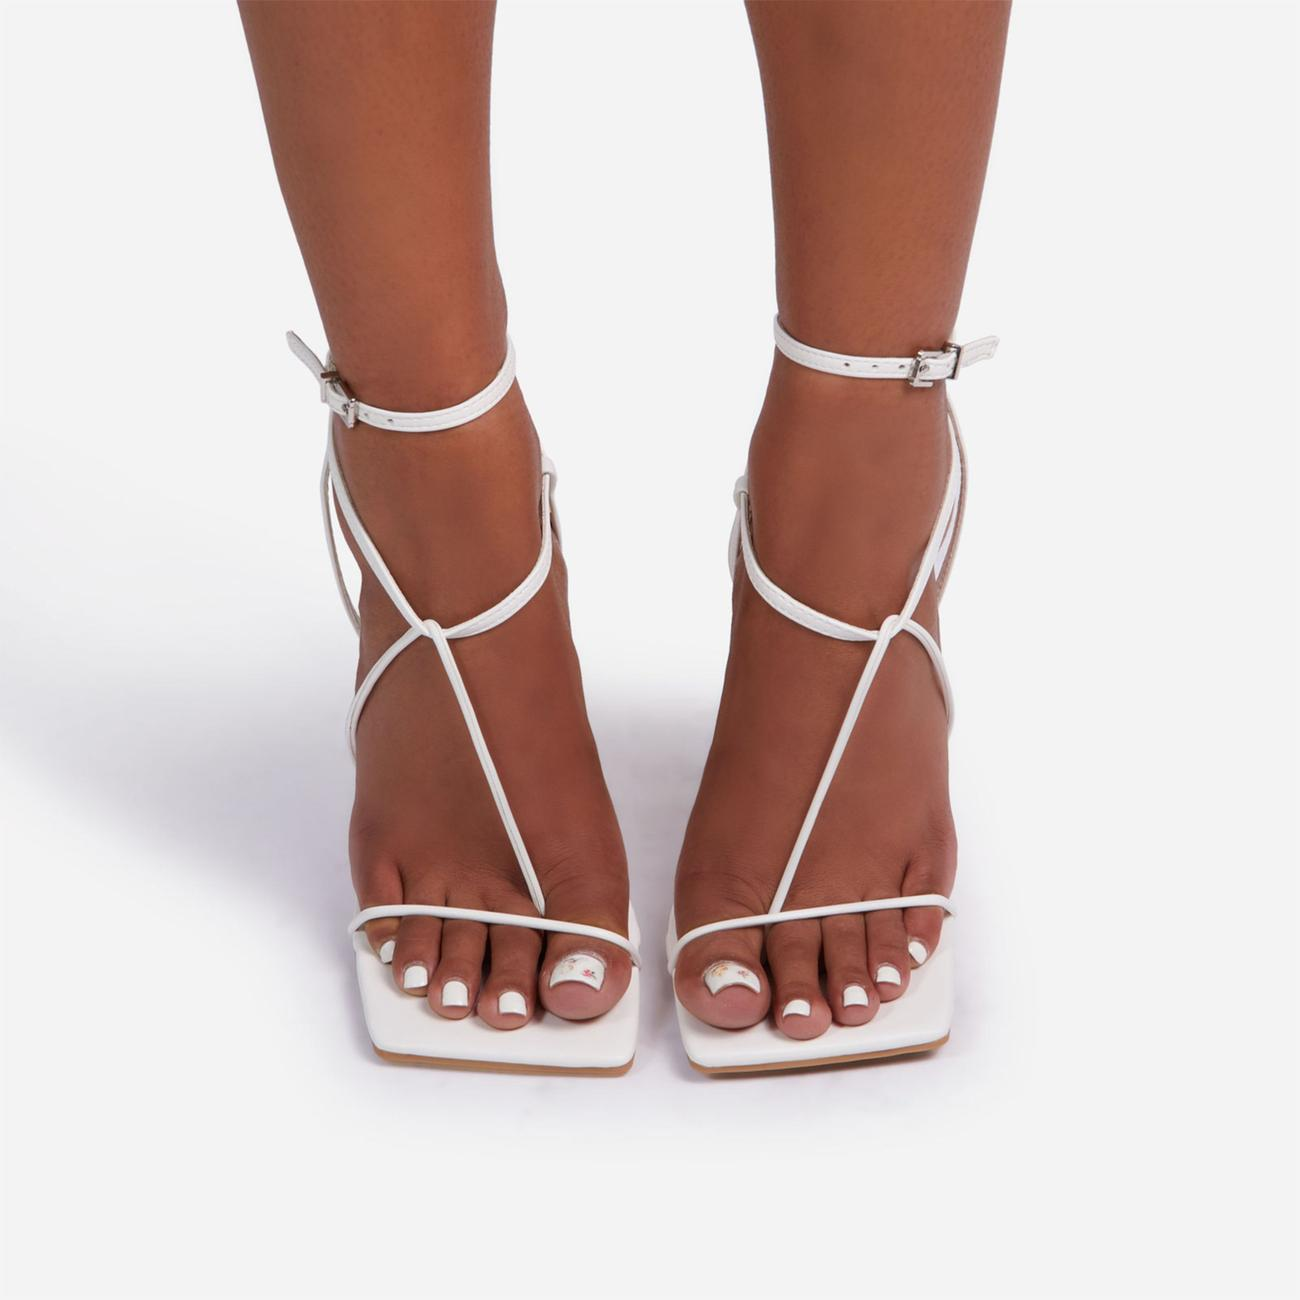 Glambition Strappy Square Toe Track Sole Heel In White Faux Leather Image 4